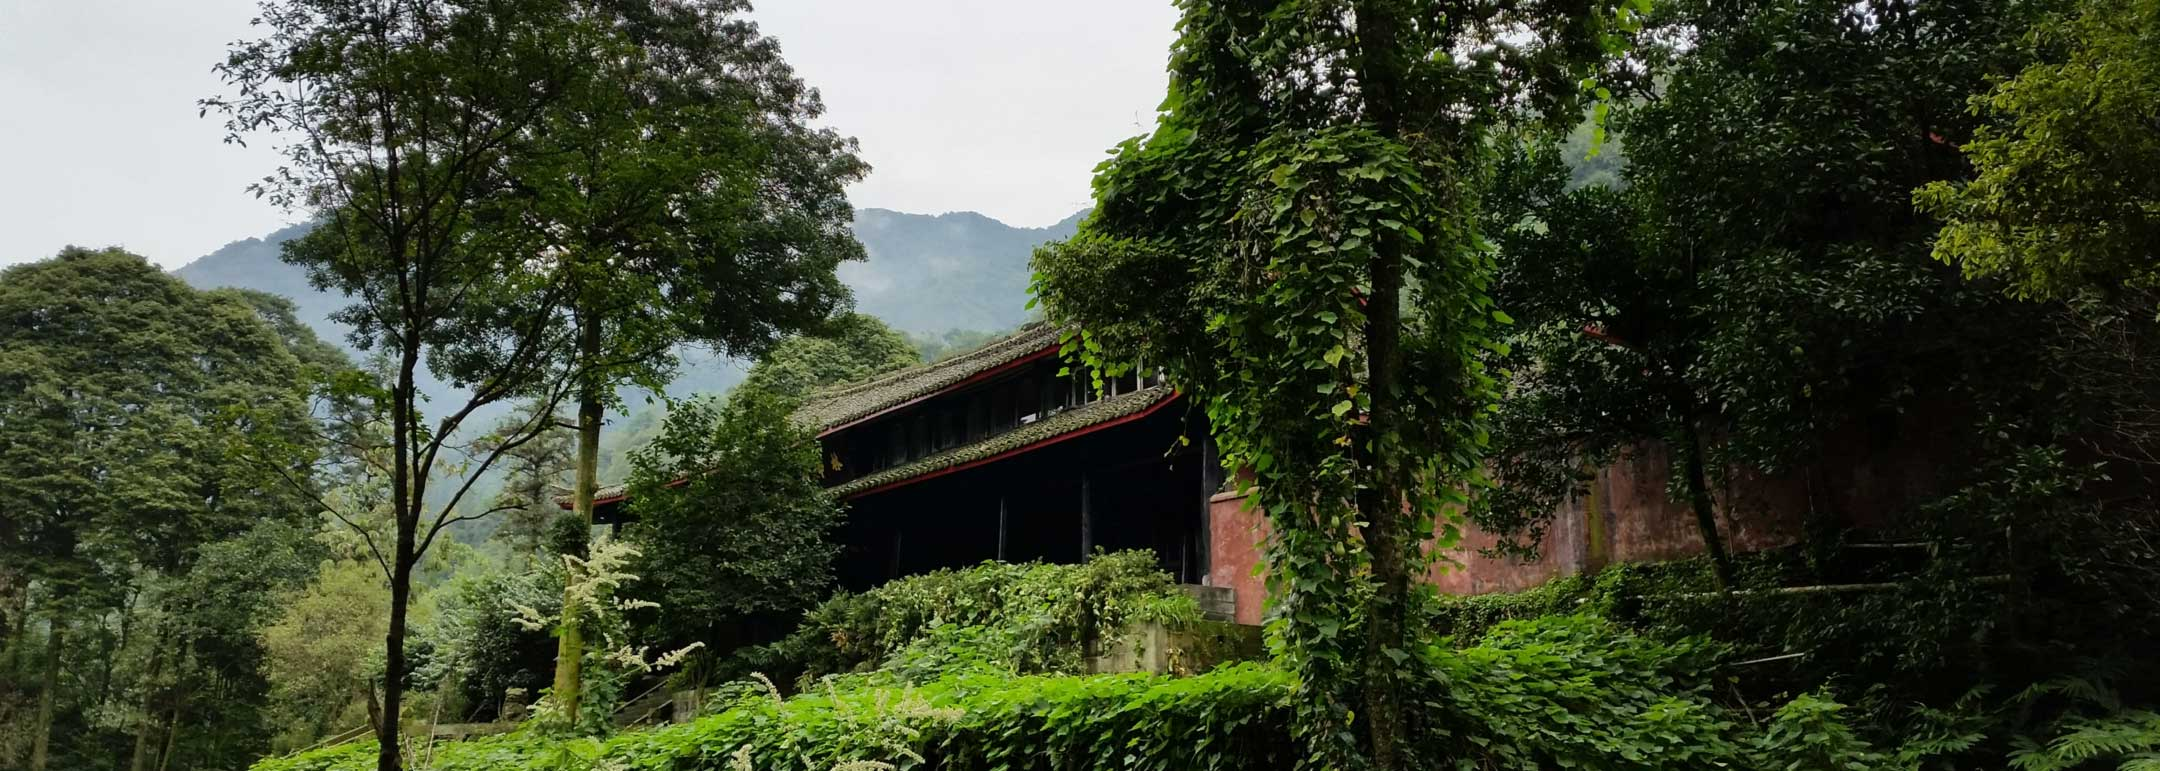 Harmony and Internal Cultivation at Emei Mountain Temple